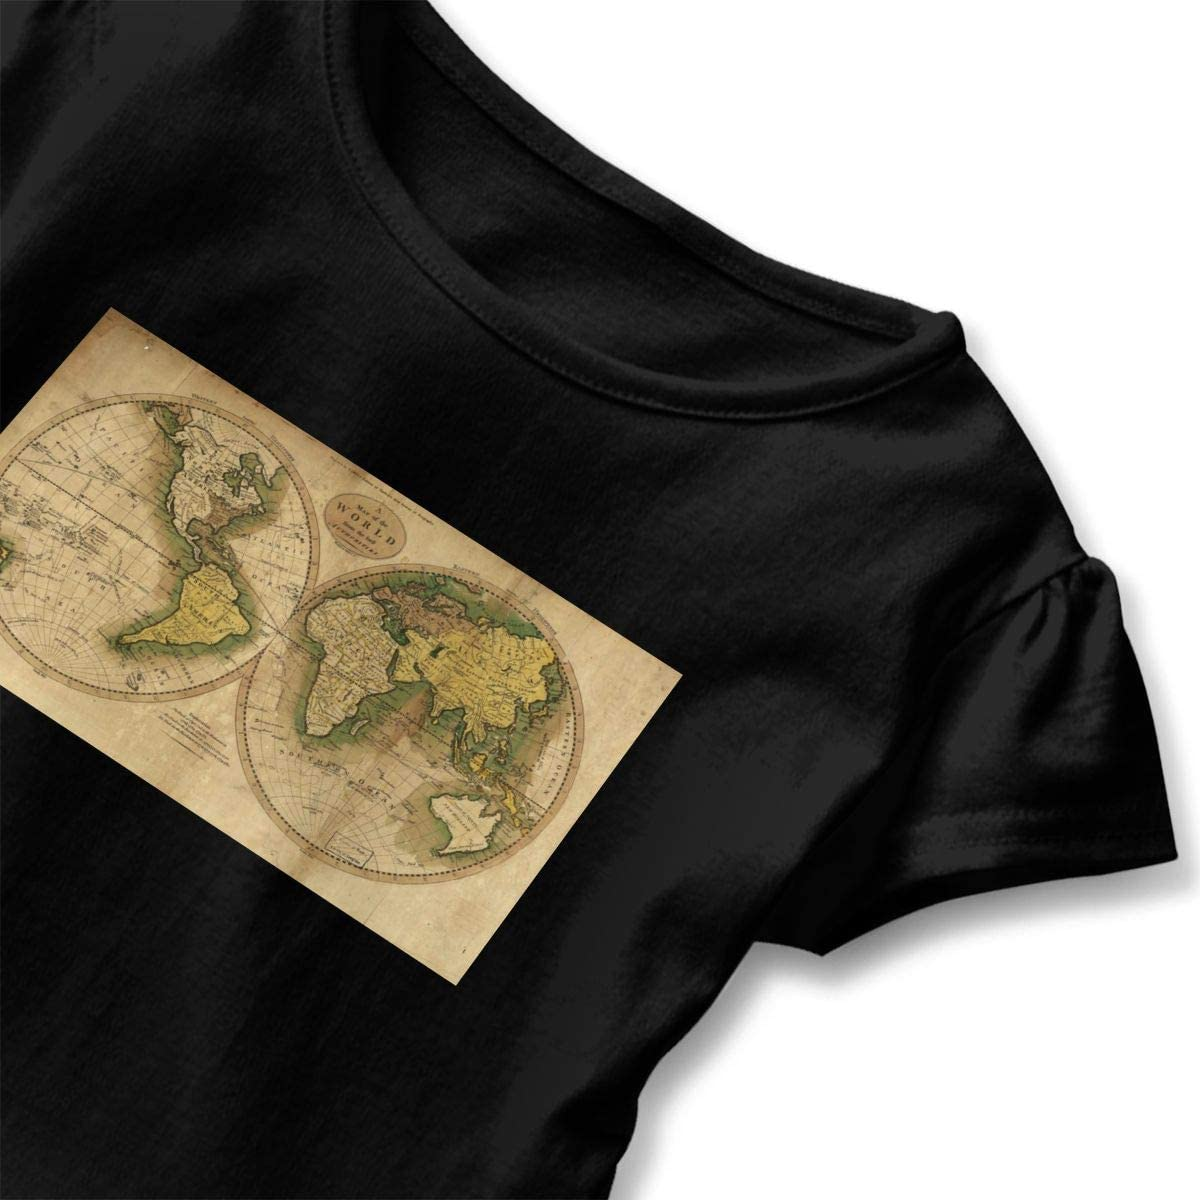 Not Available World Map Shirt Baby Girls Flounced Short Sleeve Basic Shirt for 2-6 Years Old Baby